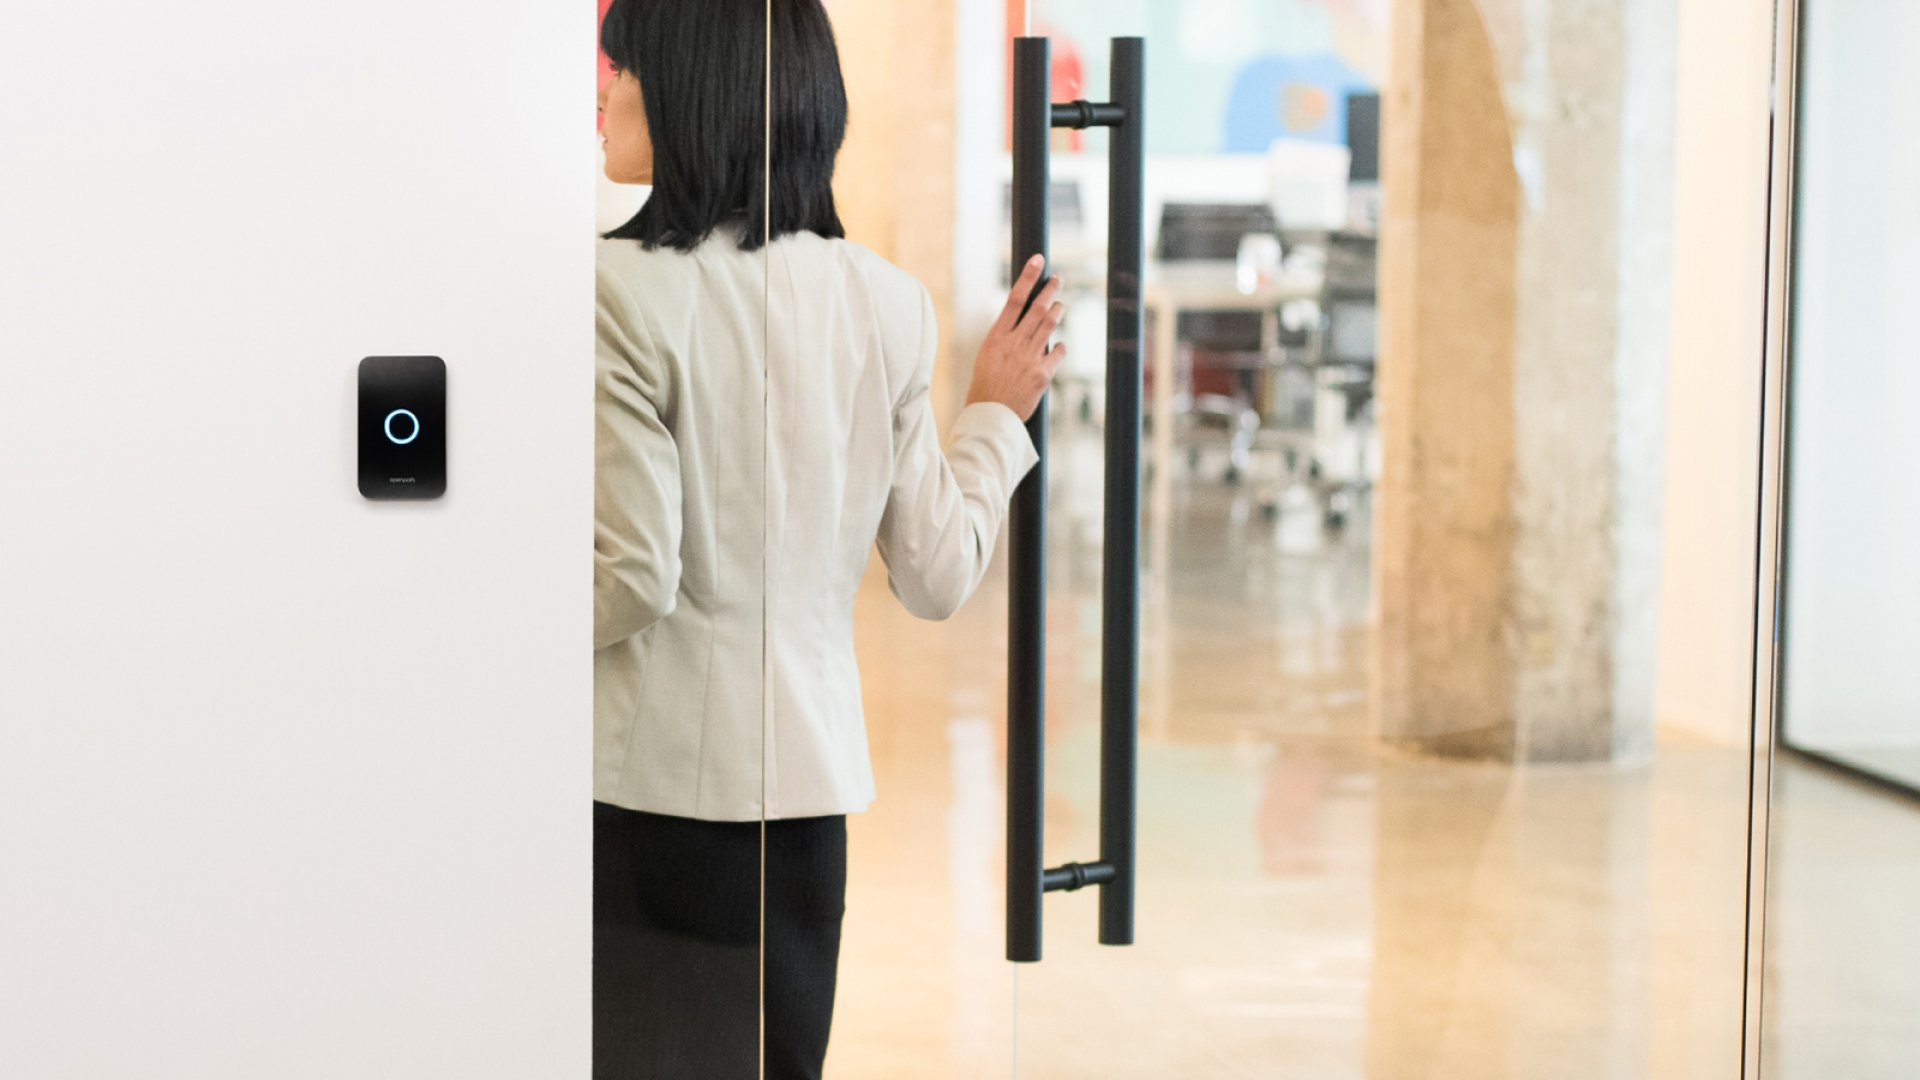 Openpath's technology, intended for emergency situations, enables remote locking and unlocking of every door in your office.